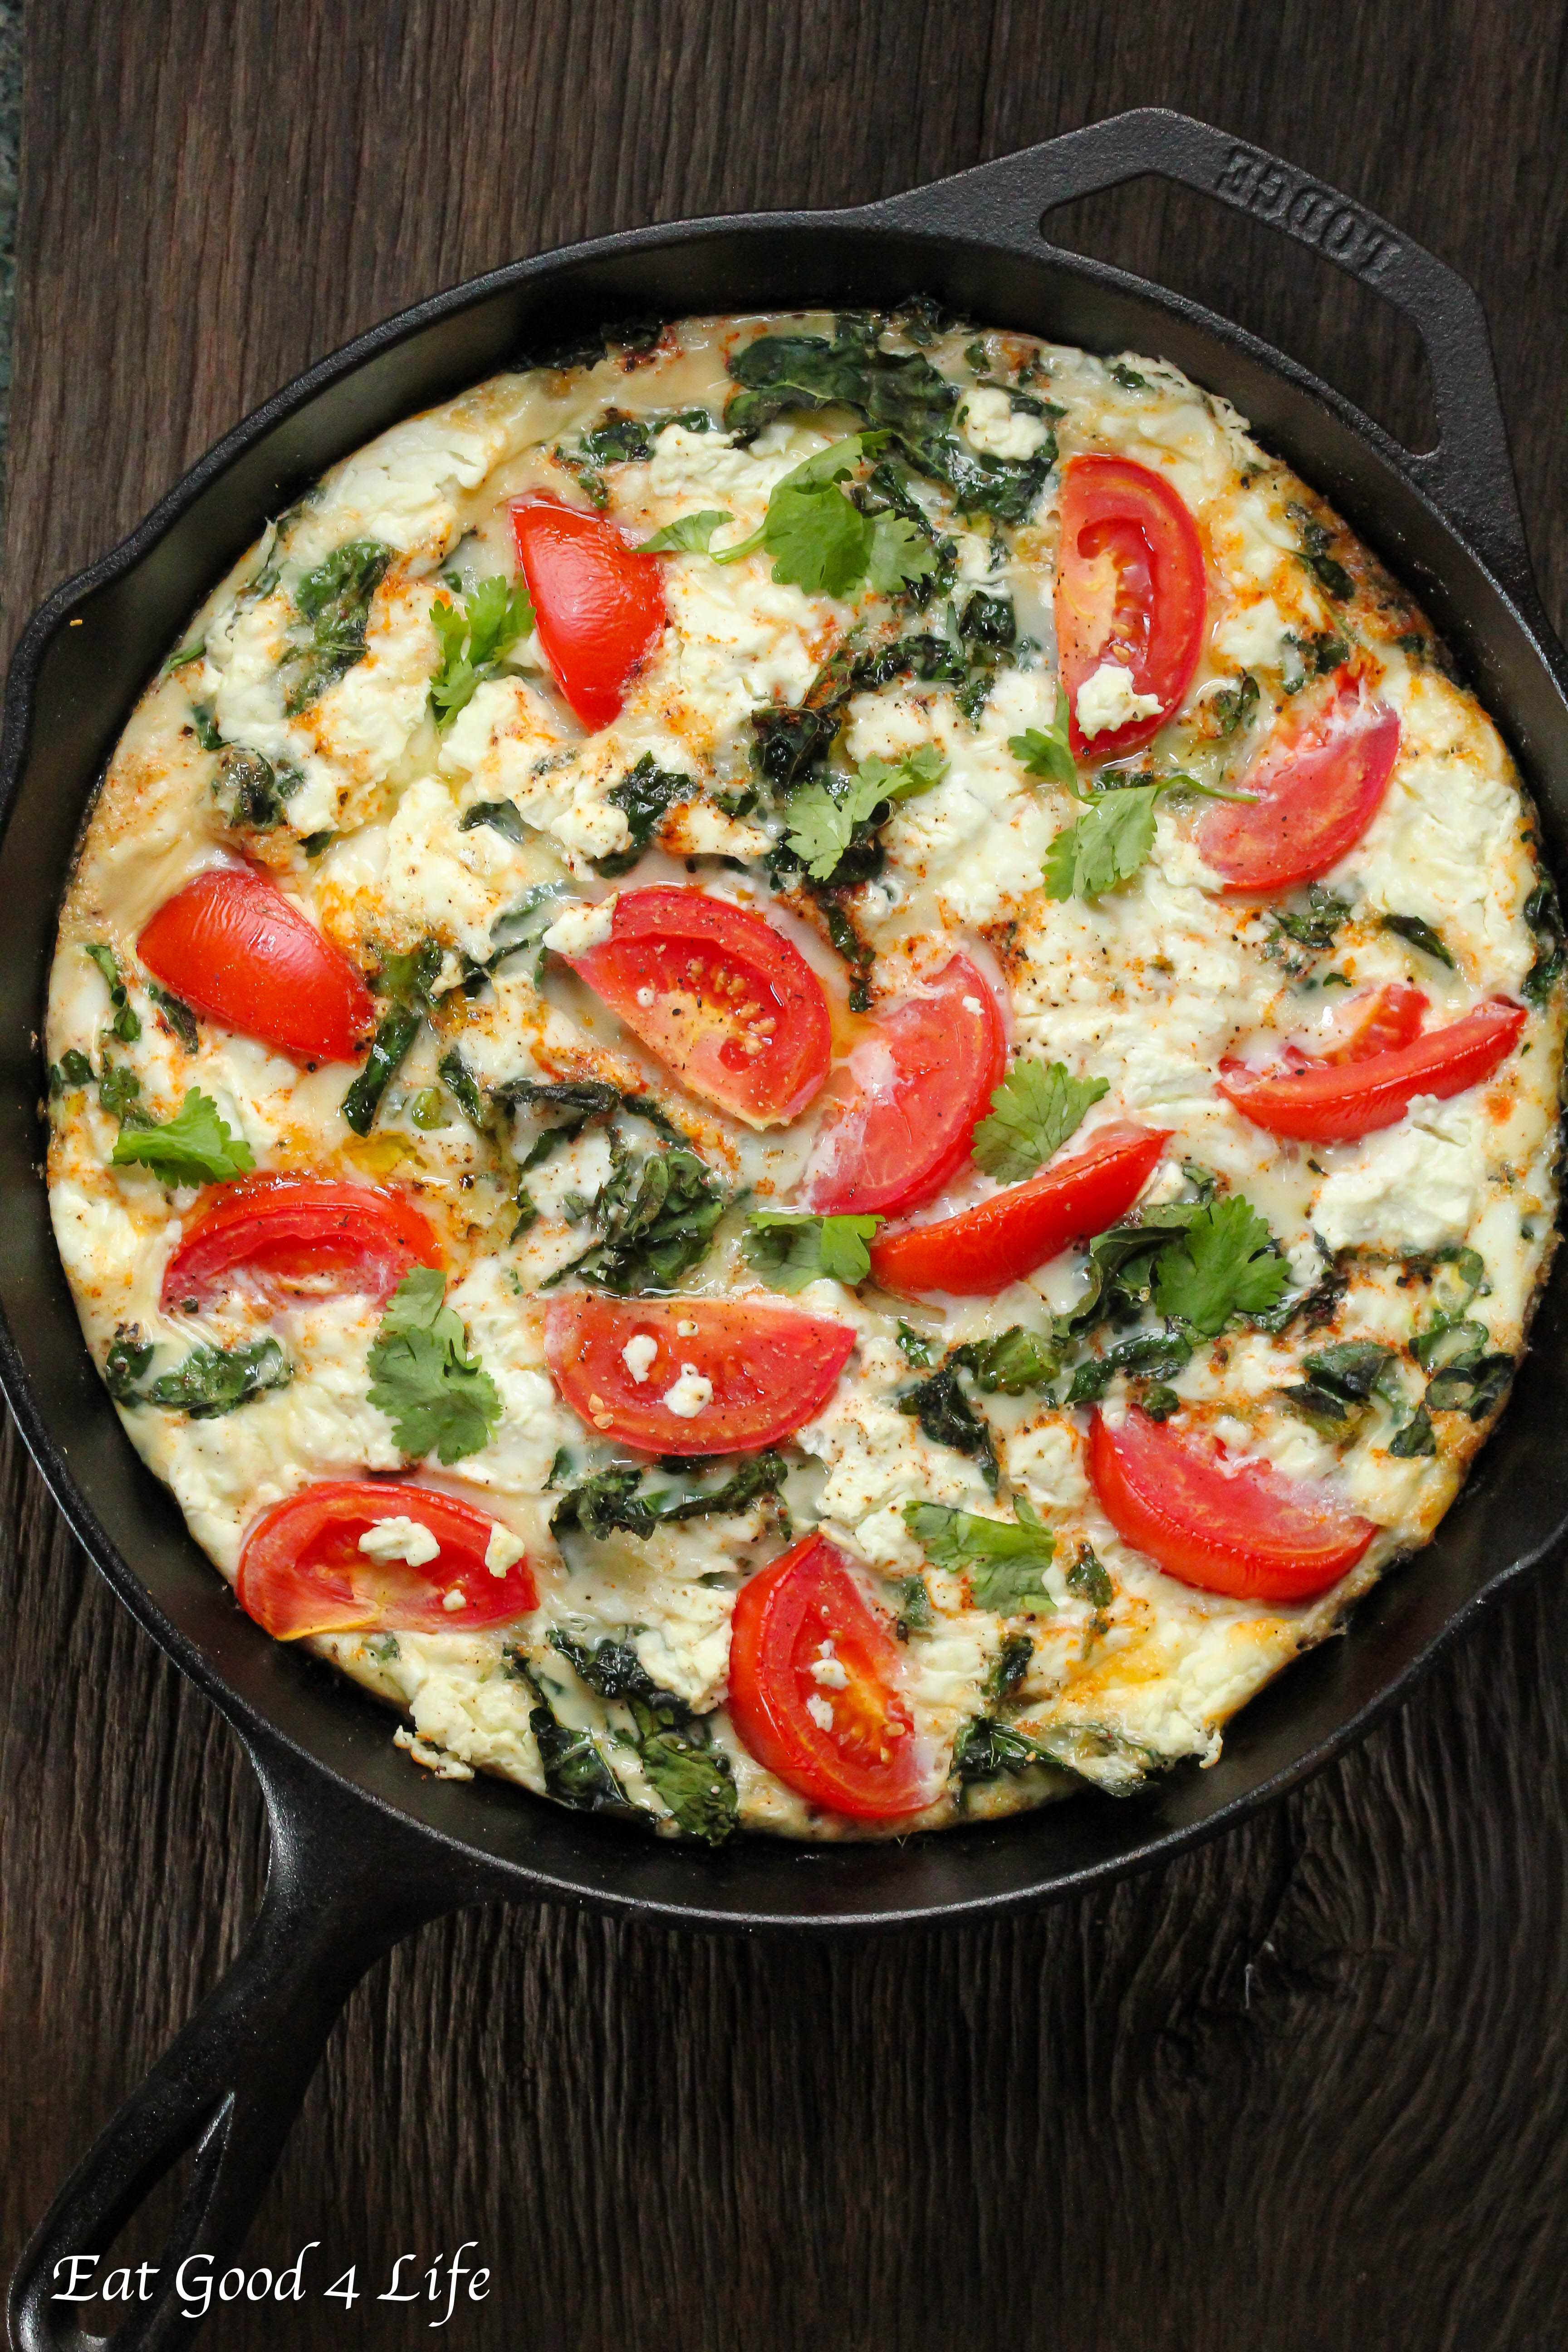 ... tomato frittata is an example. We loved this combination and my